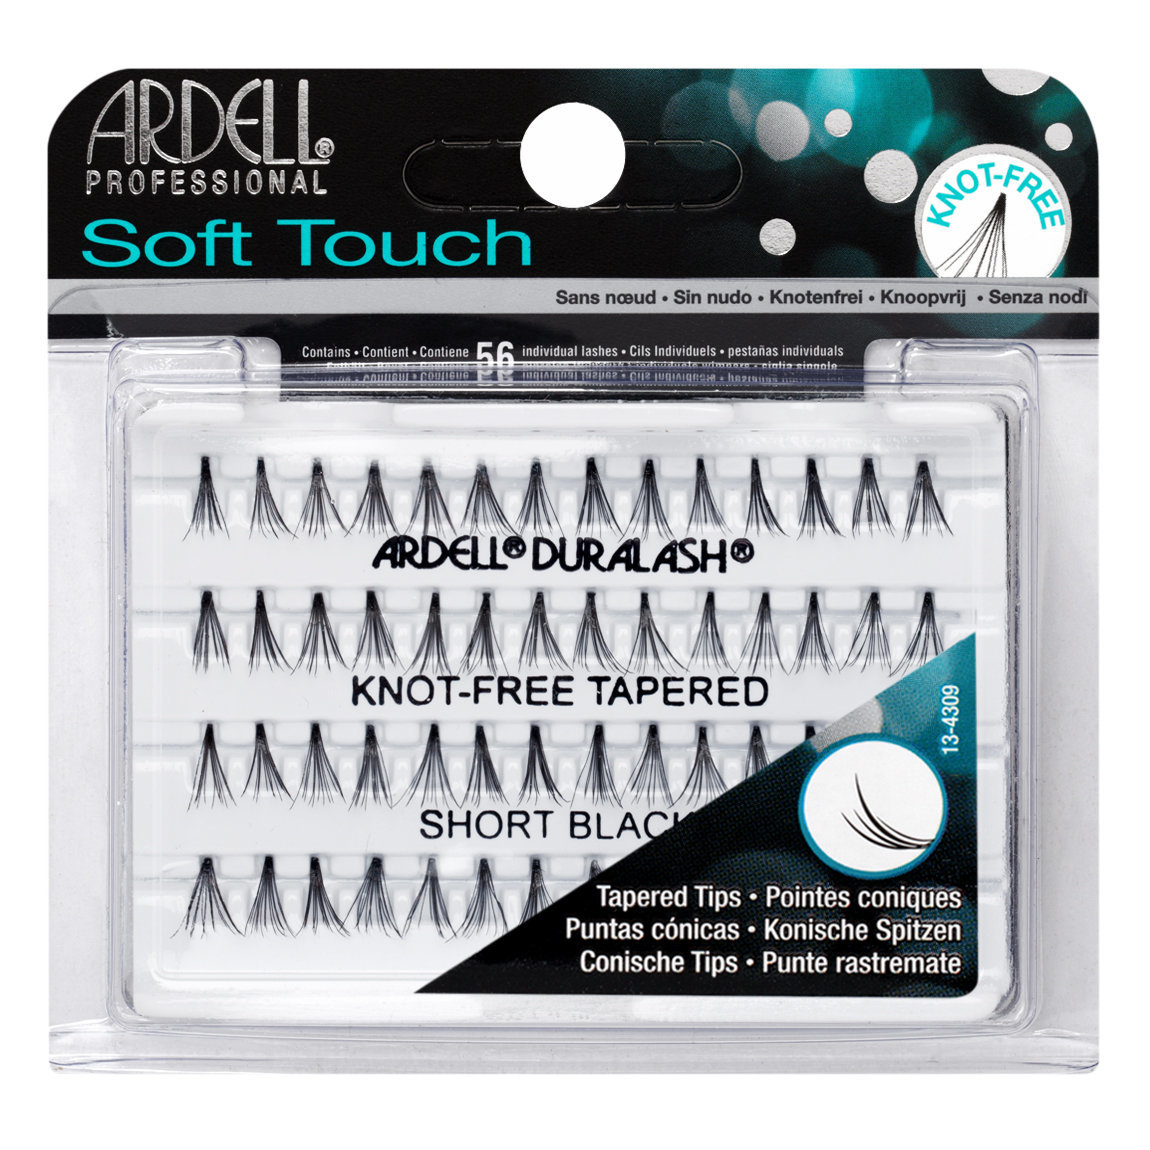 Ardell Soft Touch Individuals Knot-Free Lashes Short Black alternative view 1.